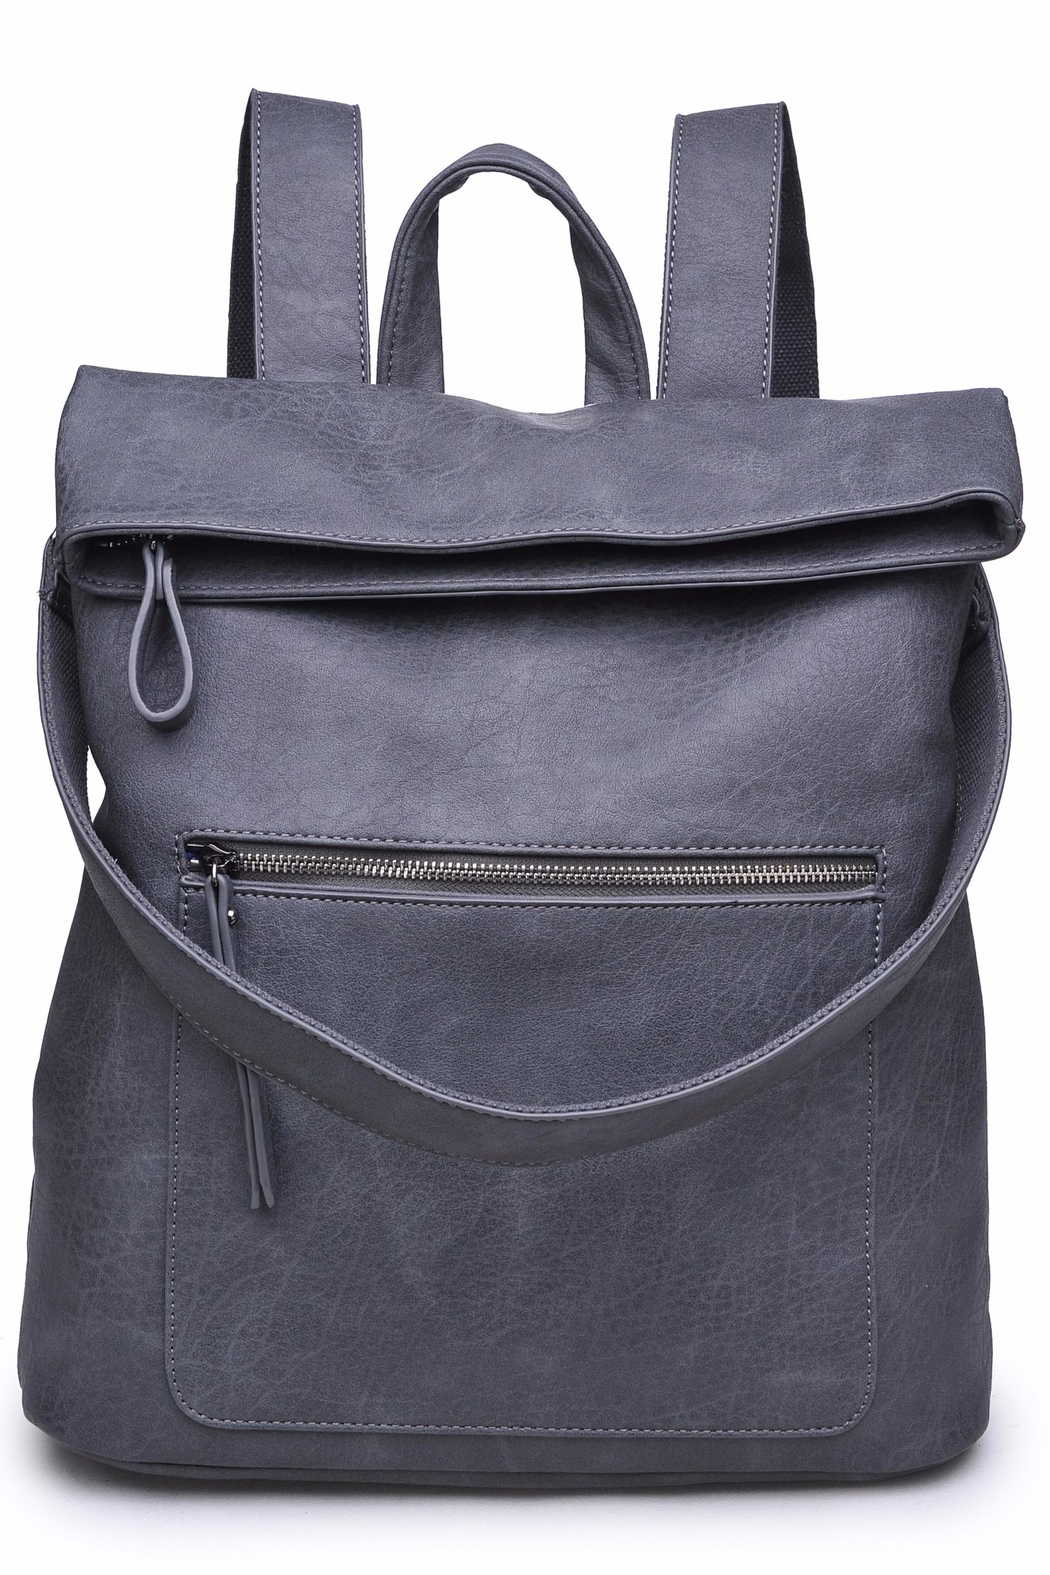 Urban Expressions Lennon Foldover Backpack - Front Cropped Image